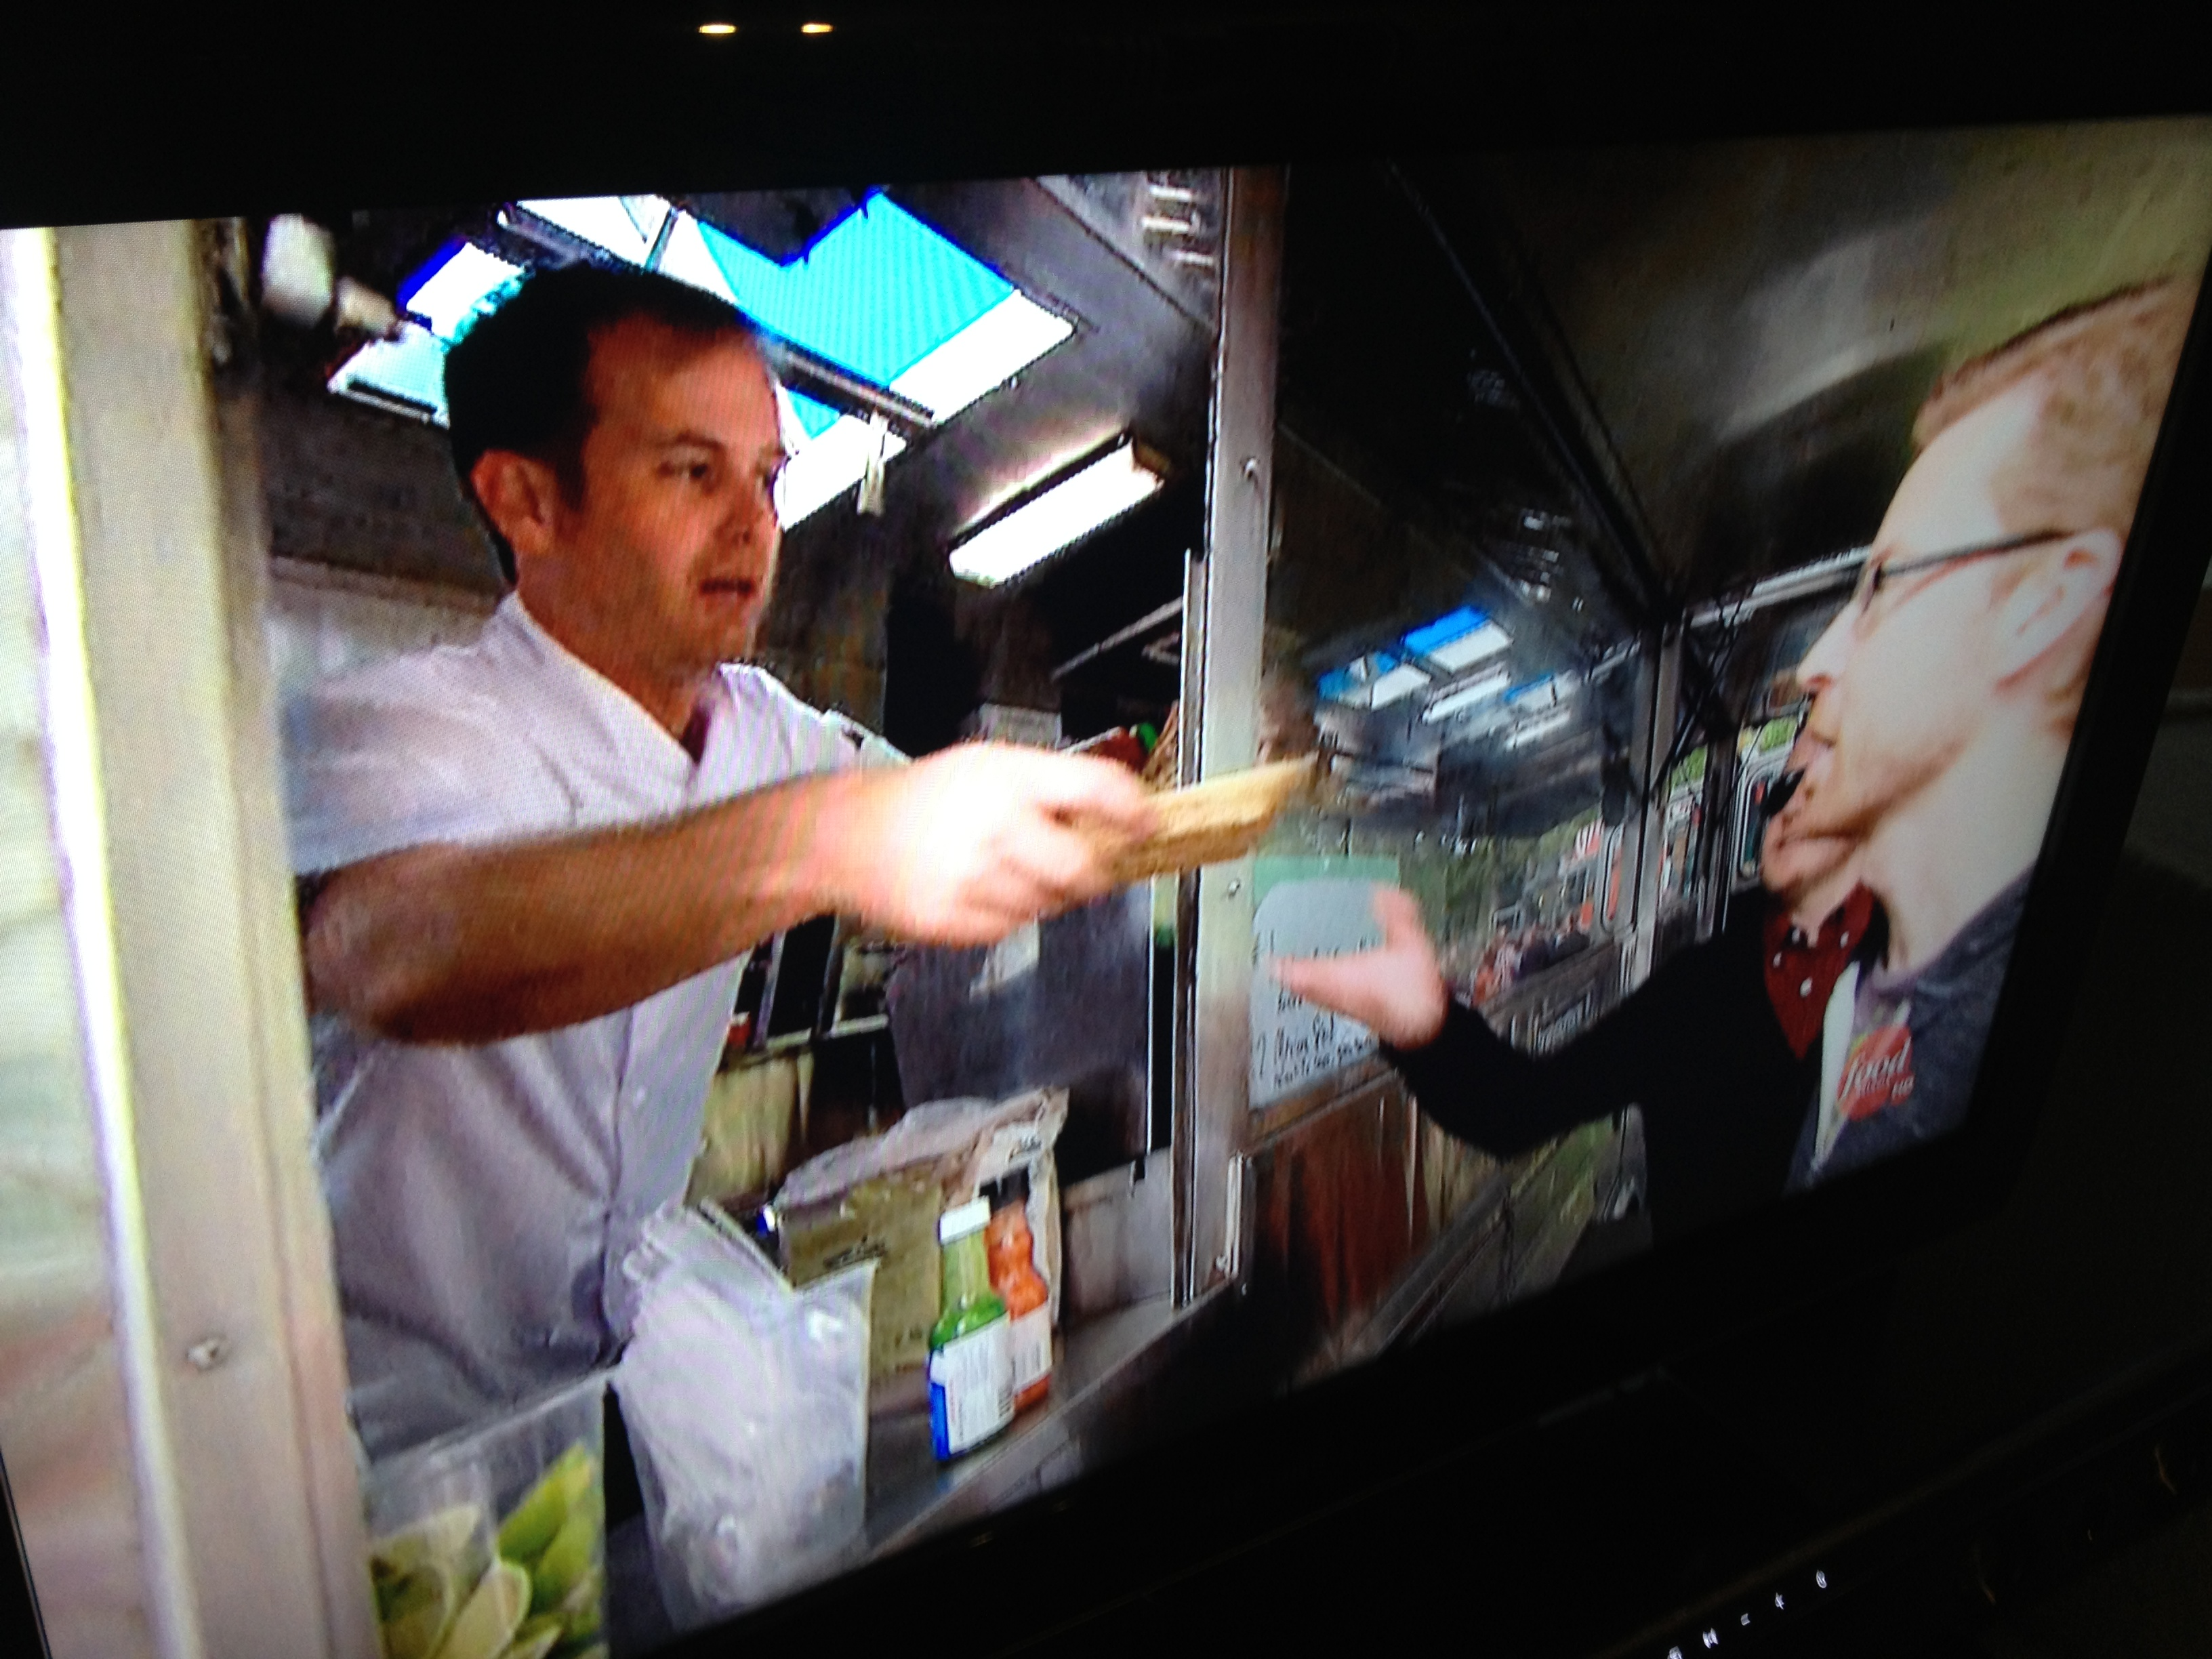 My Top Chef Canada debut!